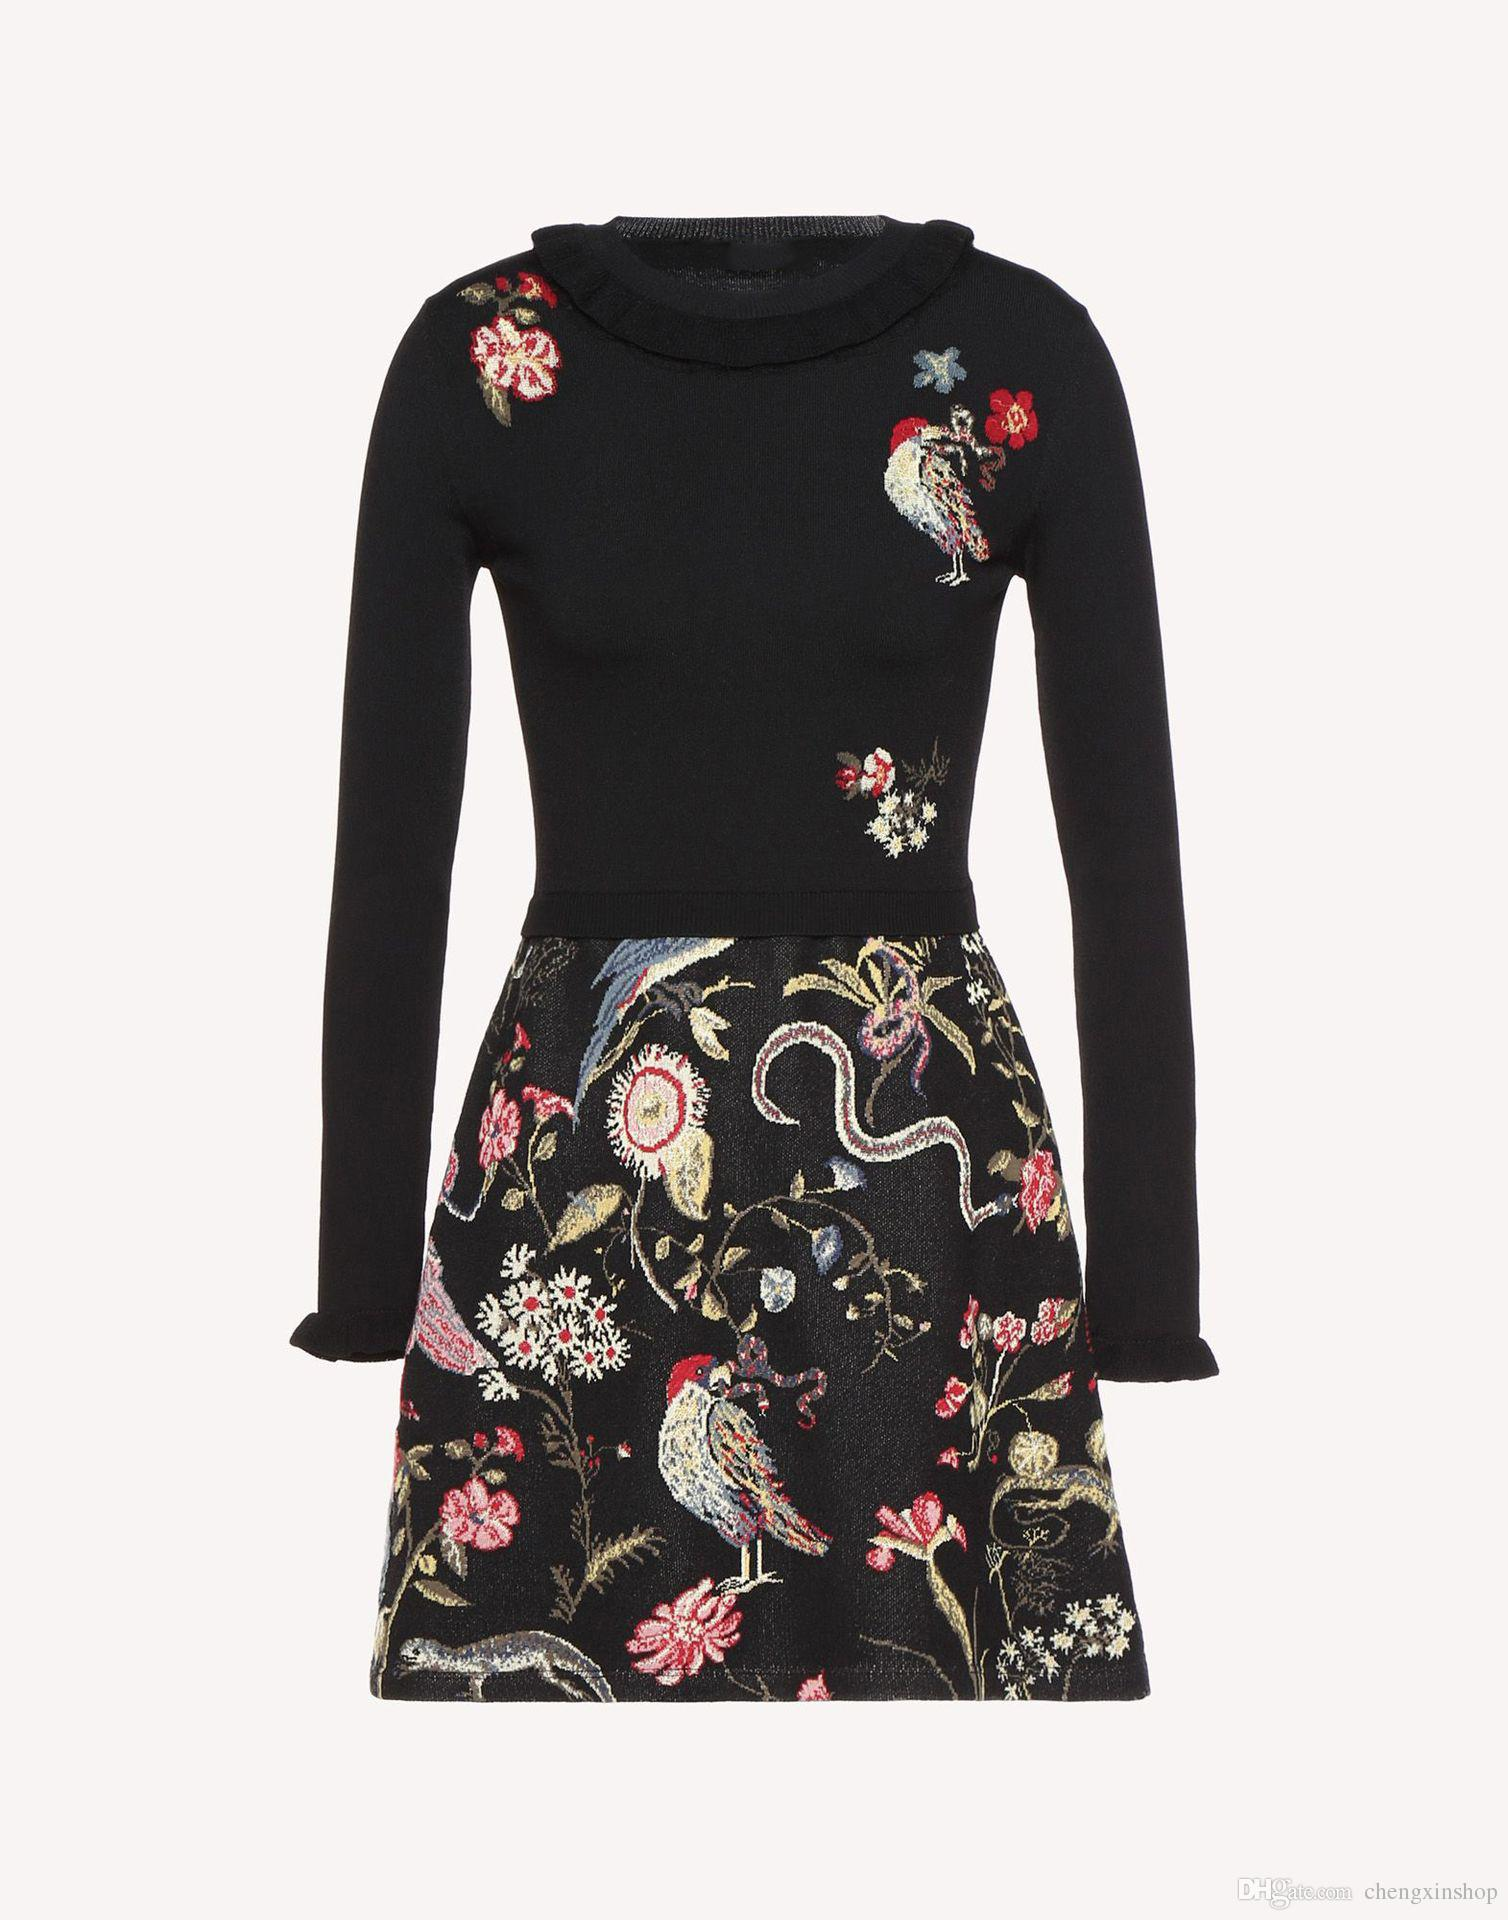 af4faf7578c27 2018 Italy Floral Print Long Sleeves Stretch Knit Round Collar Lady  Embroidery Mini Dresses Women Dress